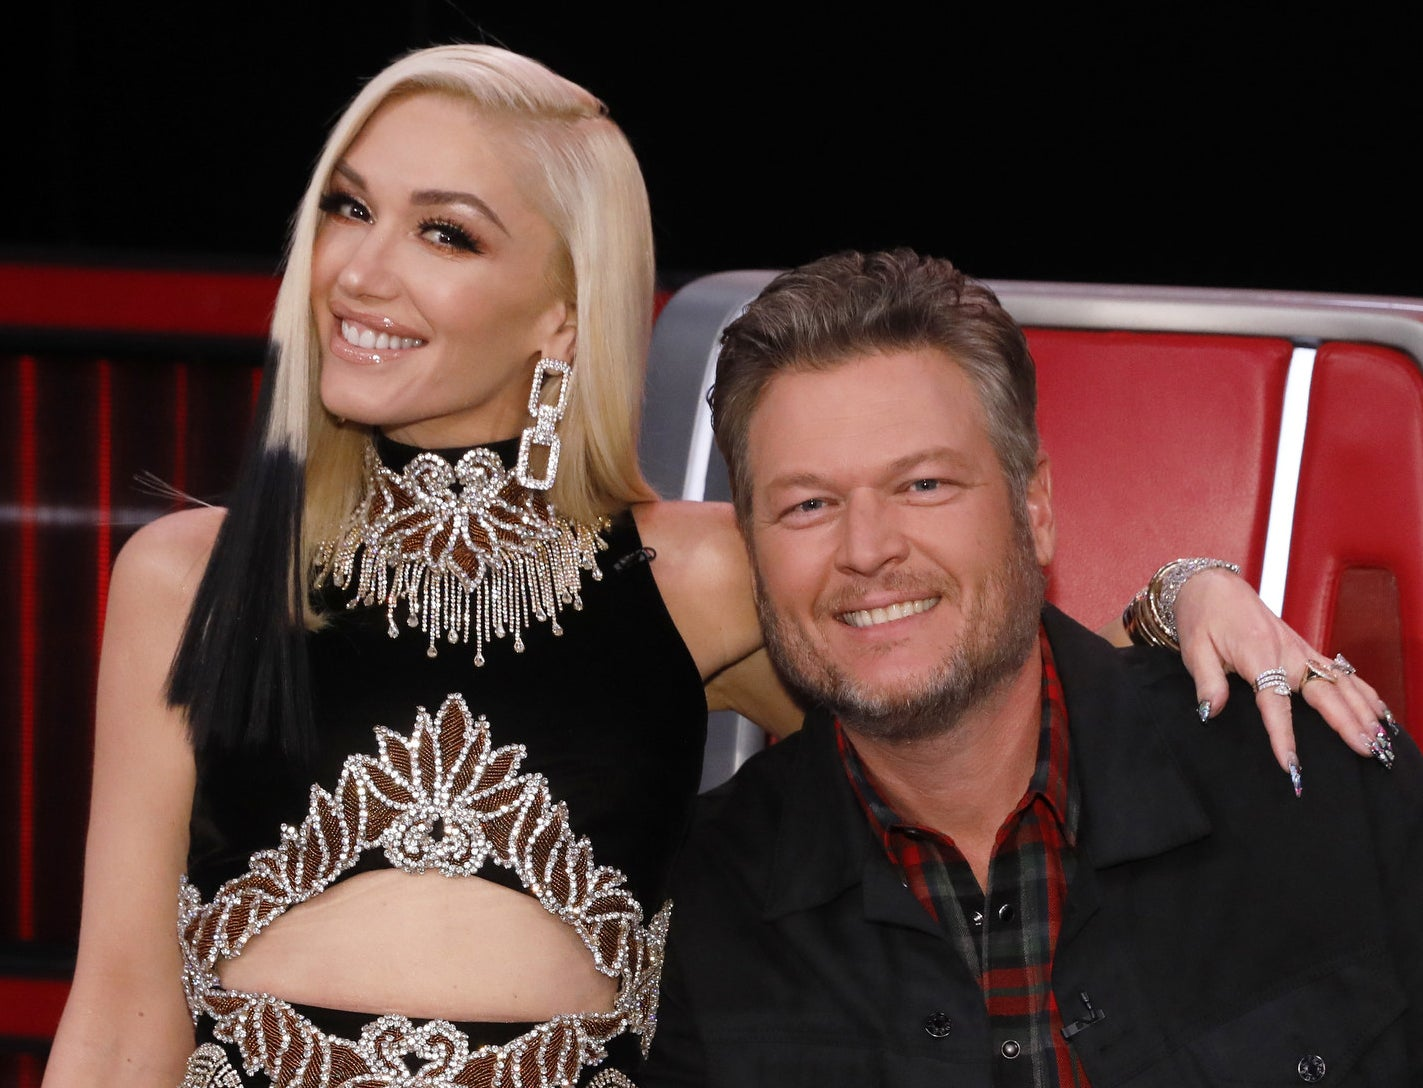 Gwen with Blake Sheldon on the set of The Voice